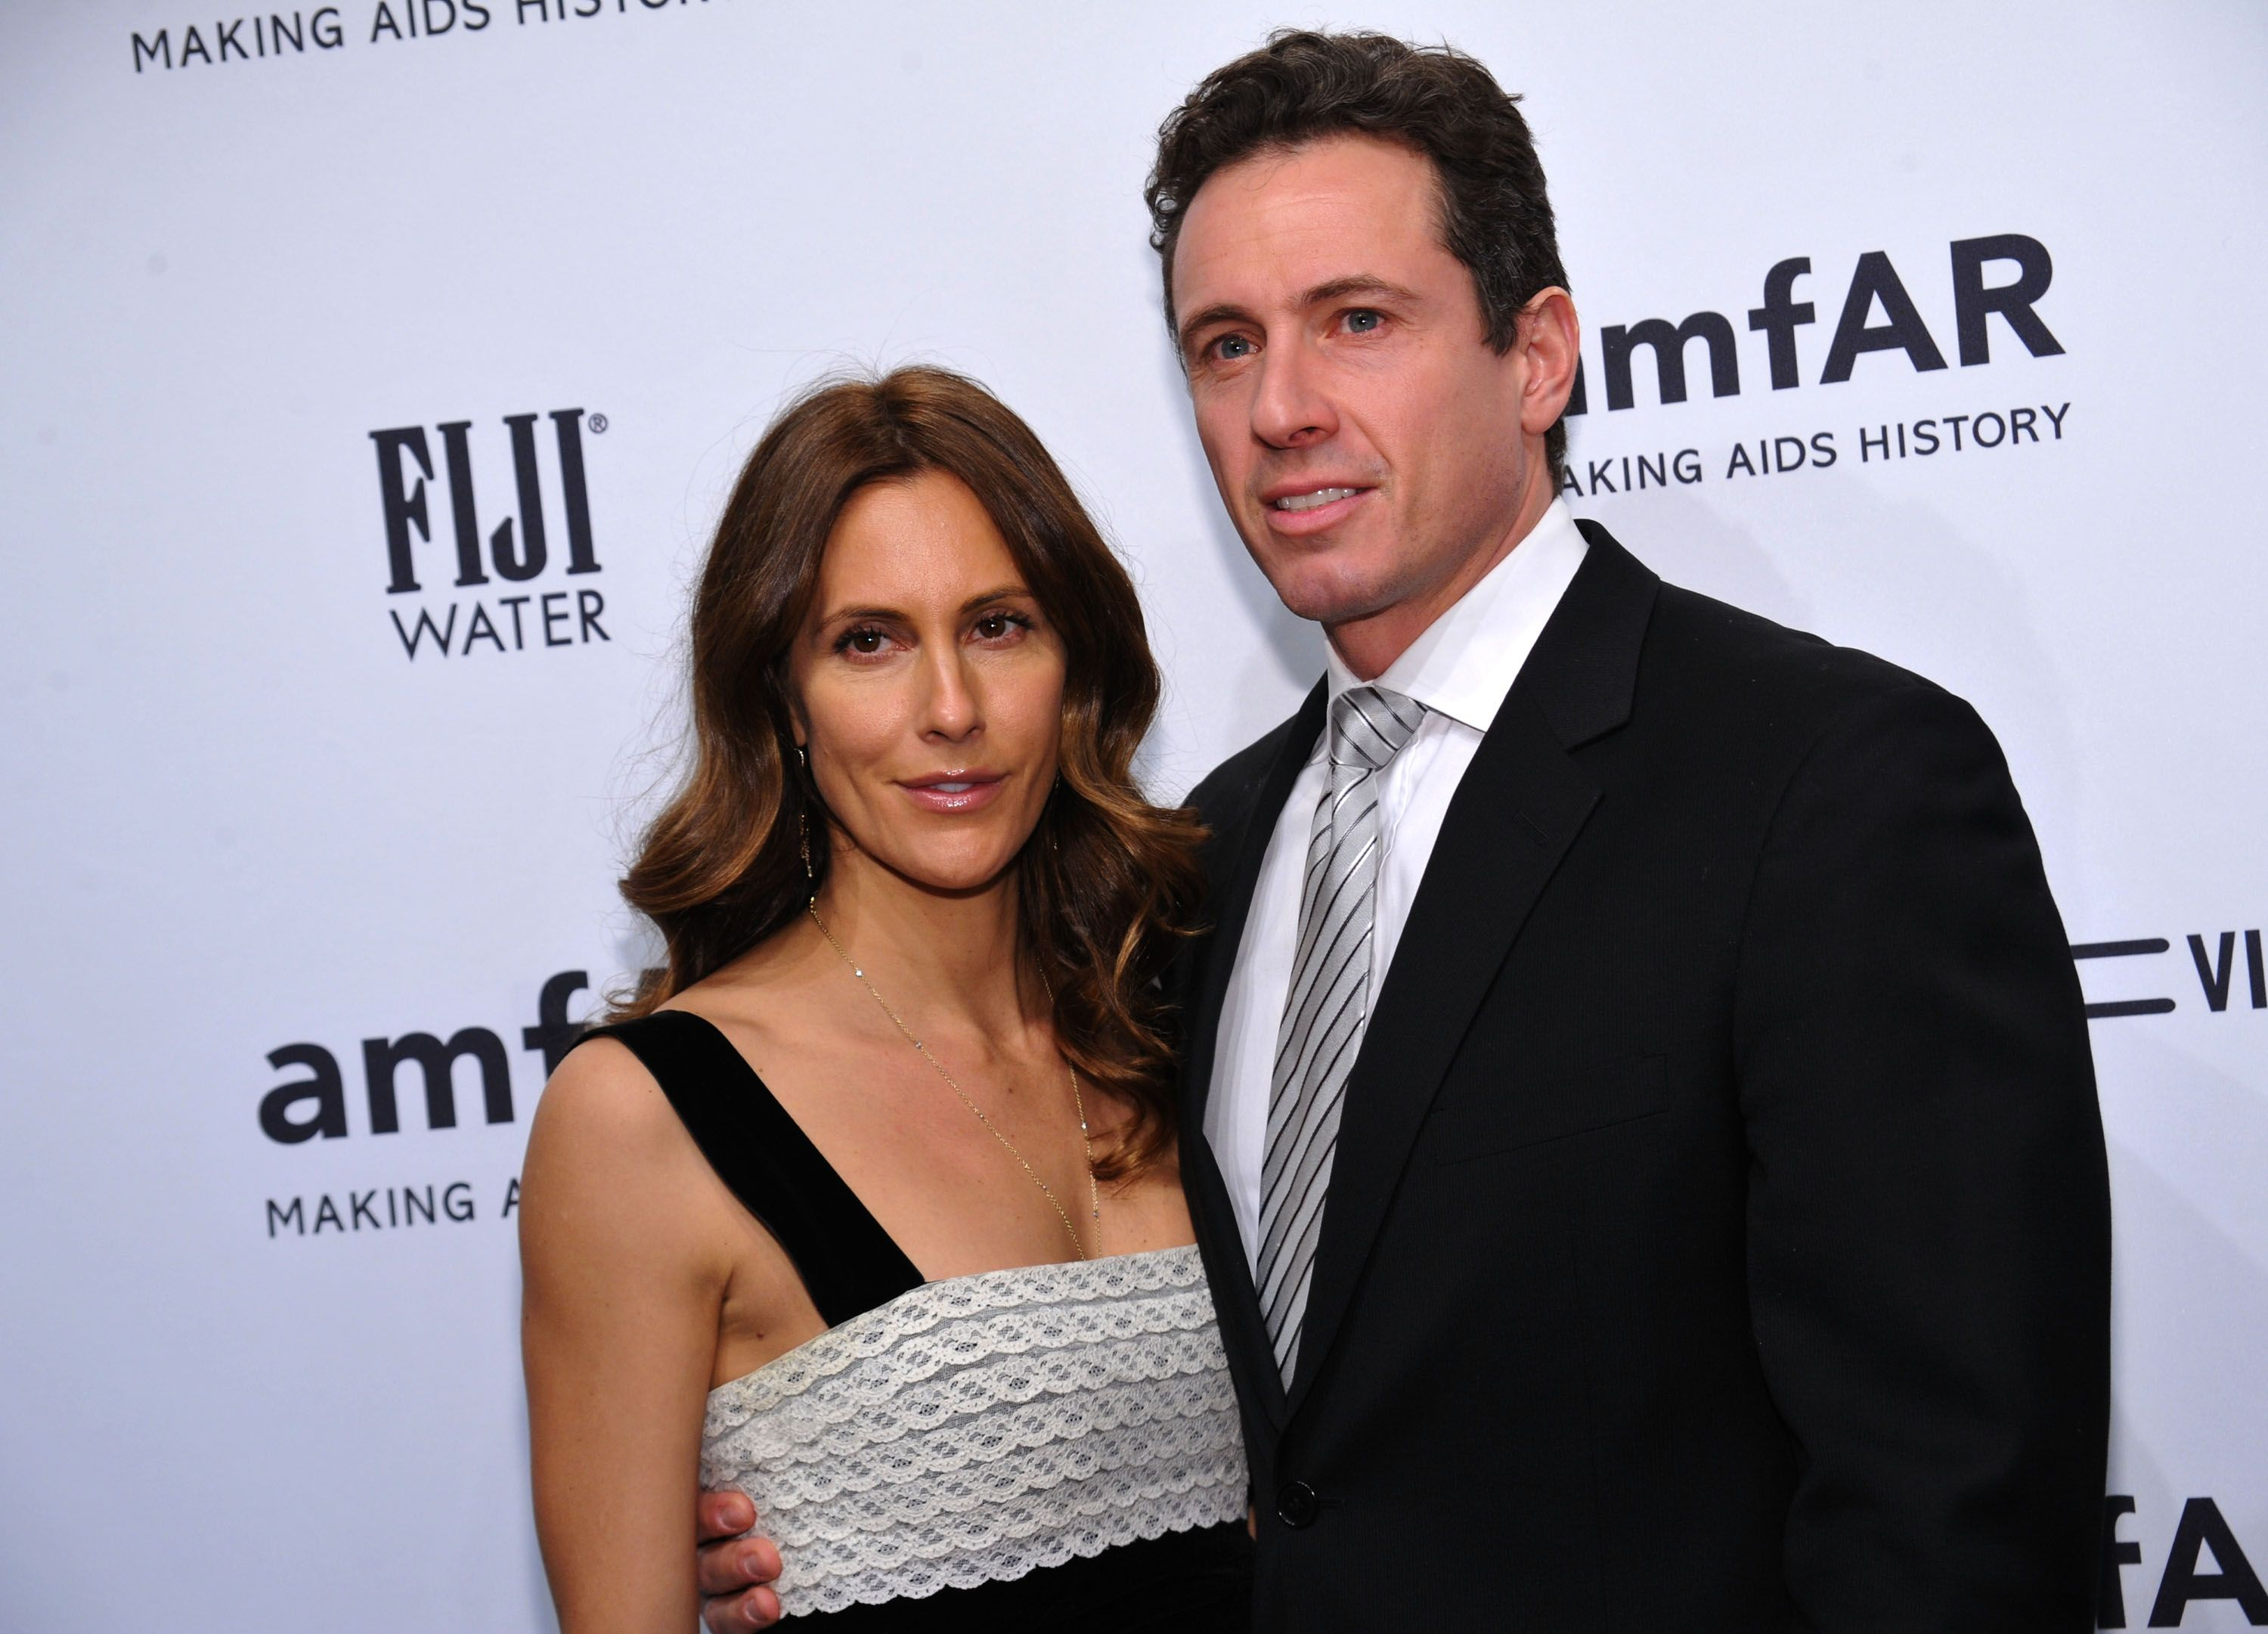 Cristina Cuomo and Chris Cuomo attend the amfAR New York Gala for Fall 2013 Fashion Week at Cipriani Wall Street on February 6, 2013 in New York City. | Photo: Getty Images